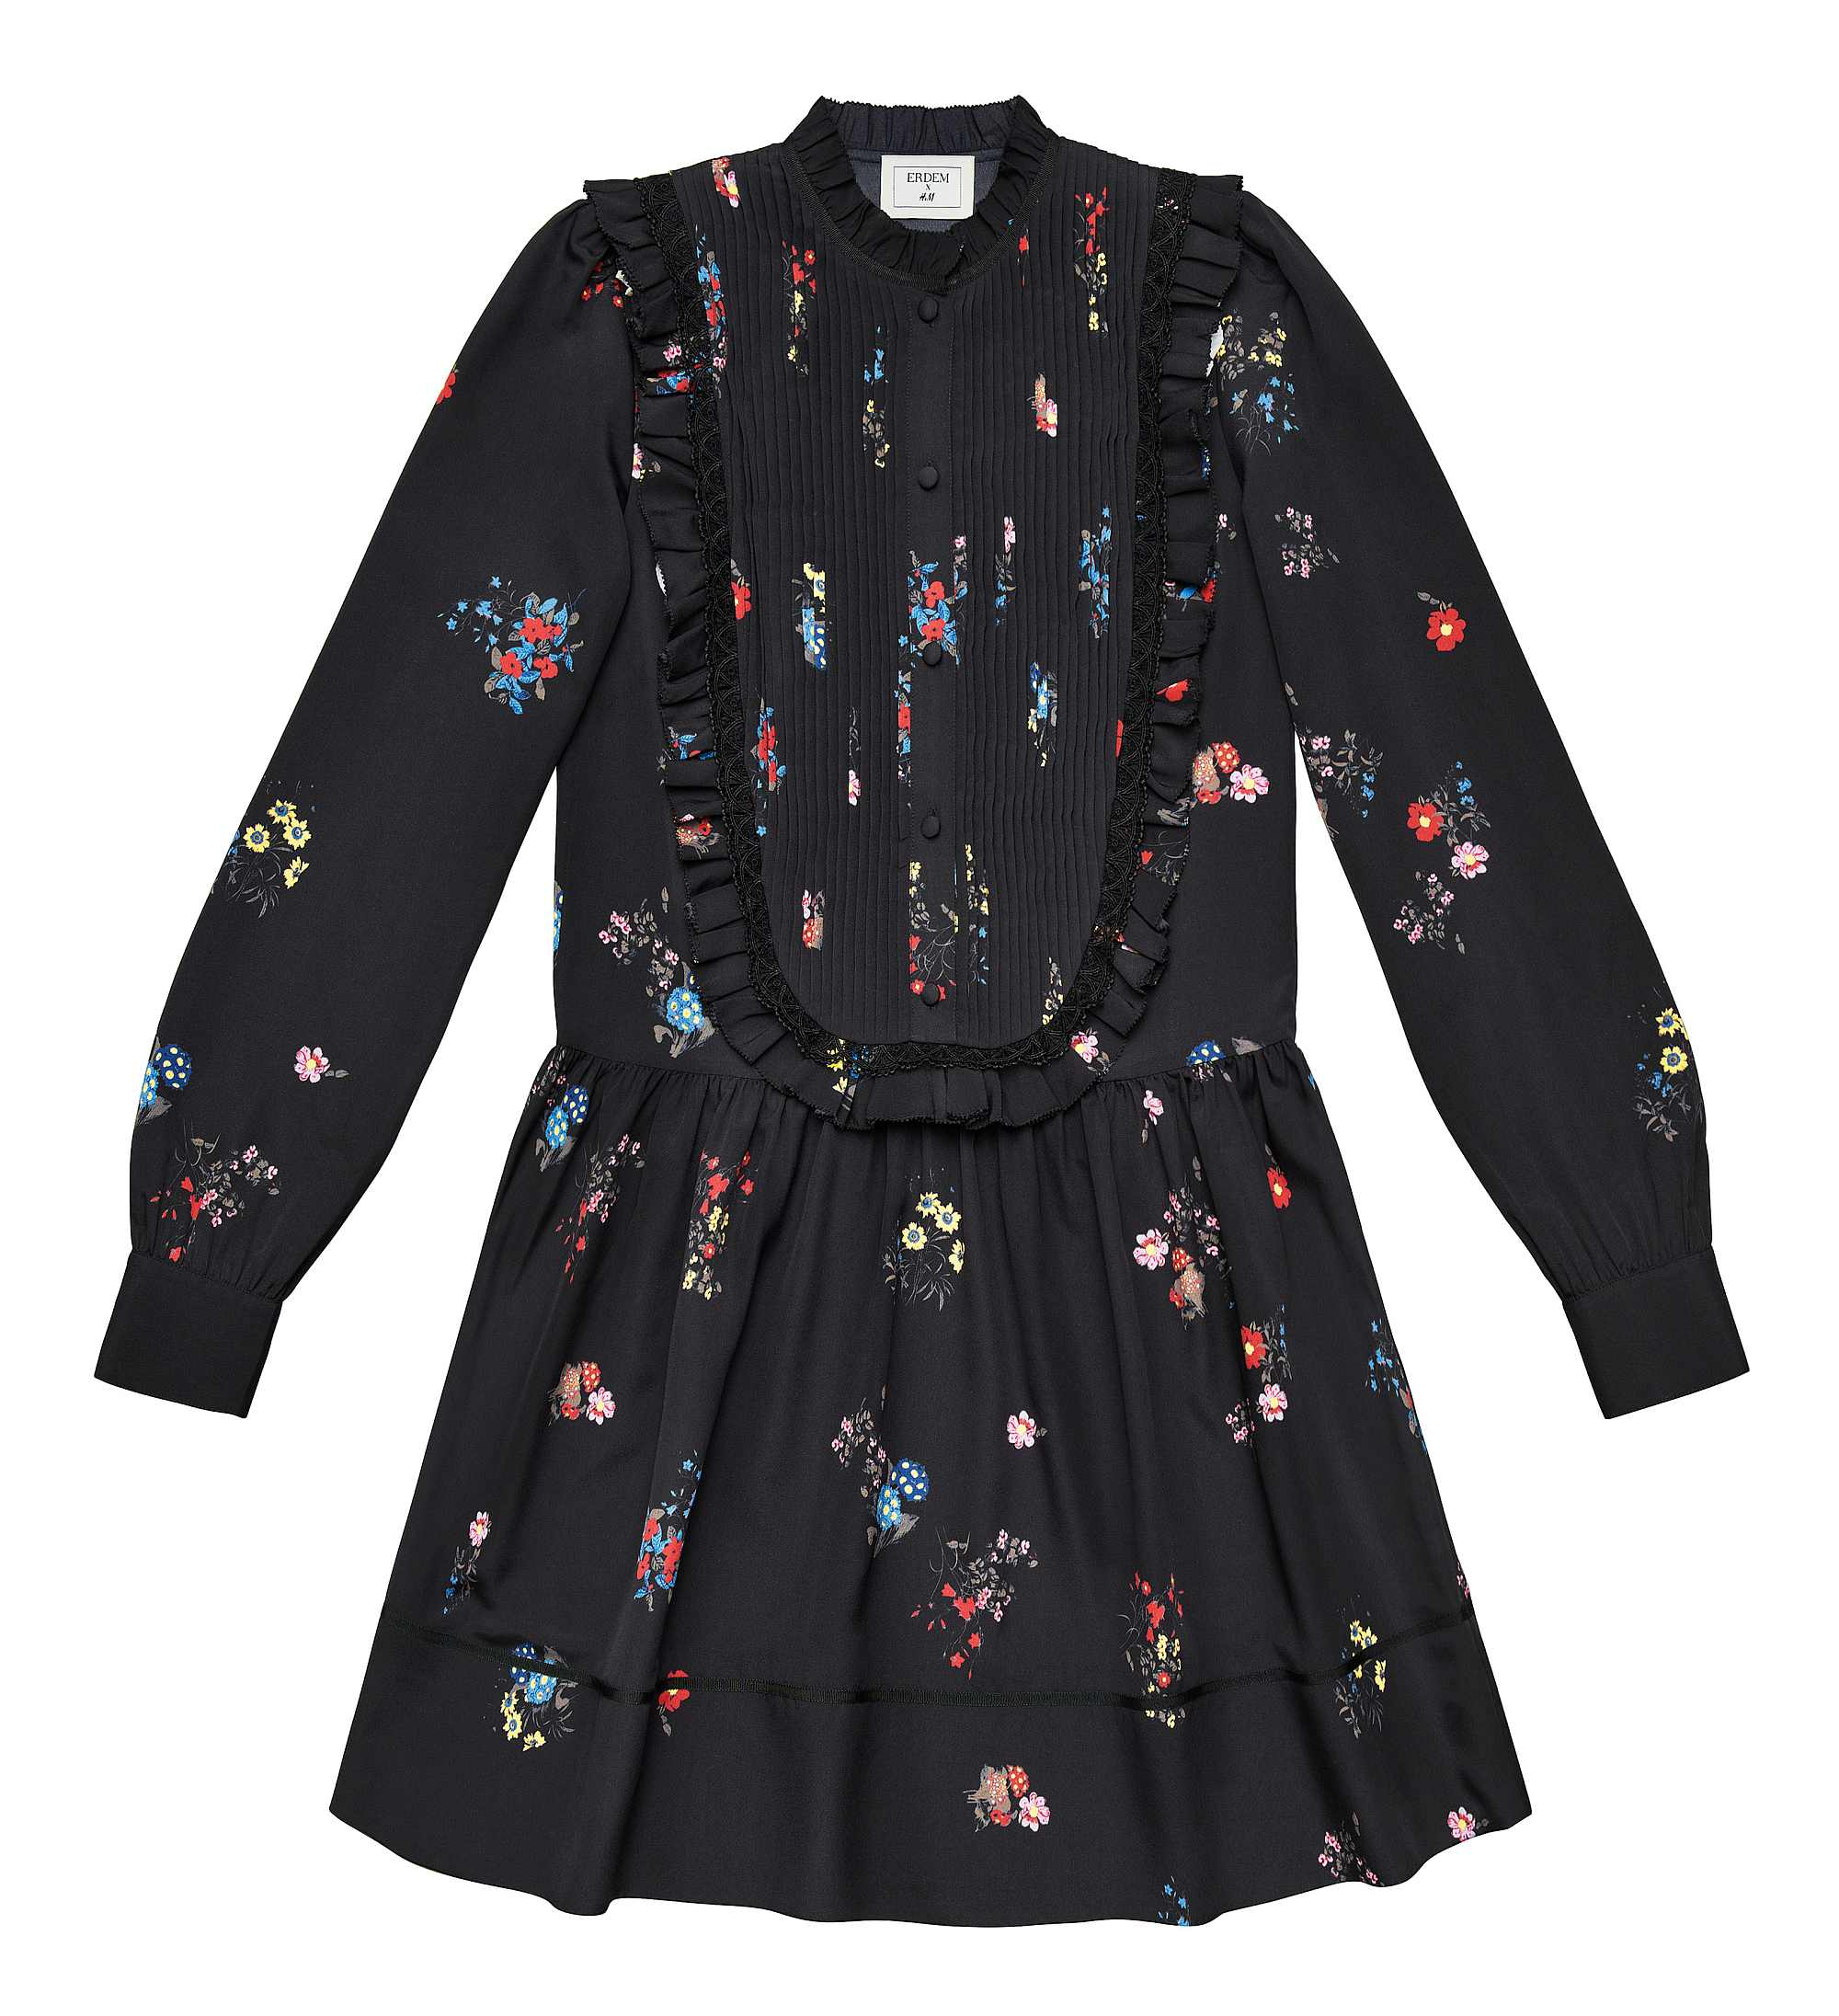 H&M x Erdem Long sleeved dress